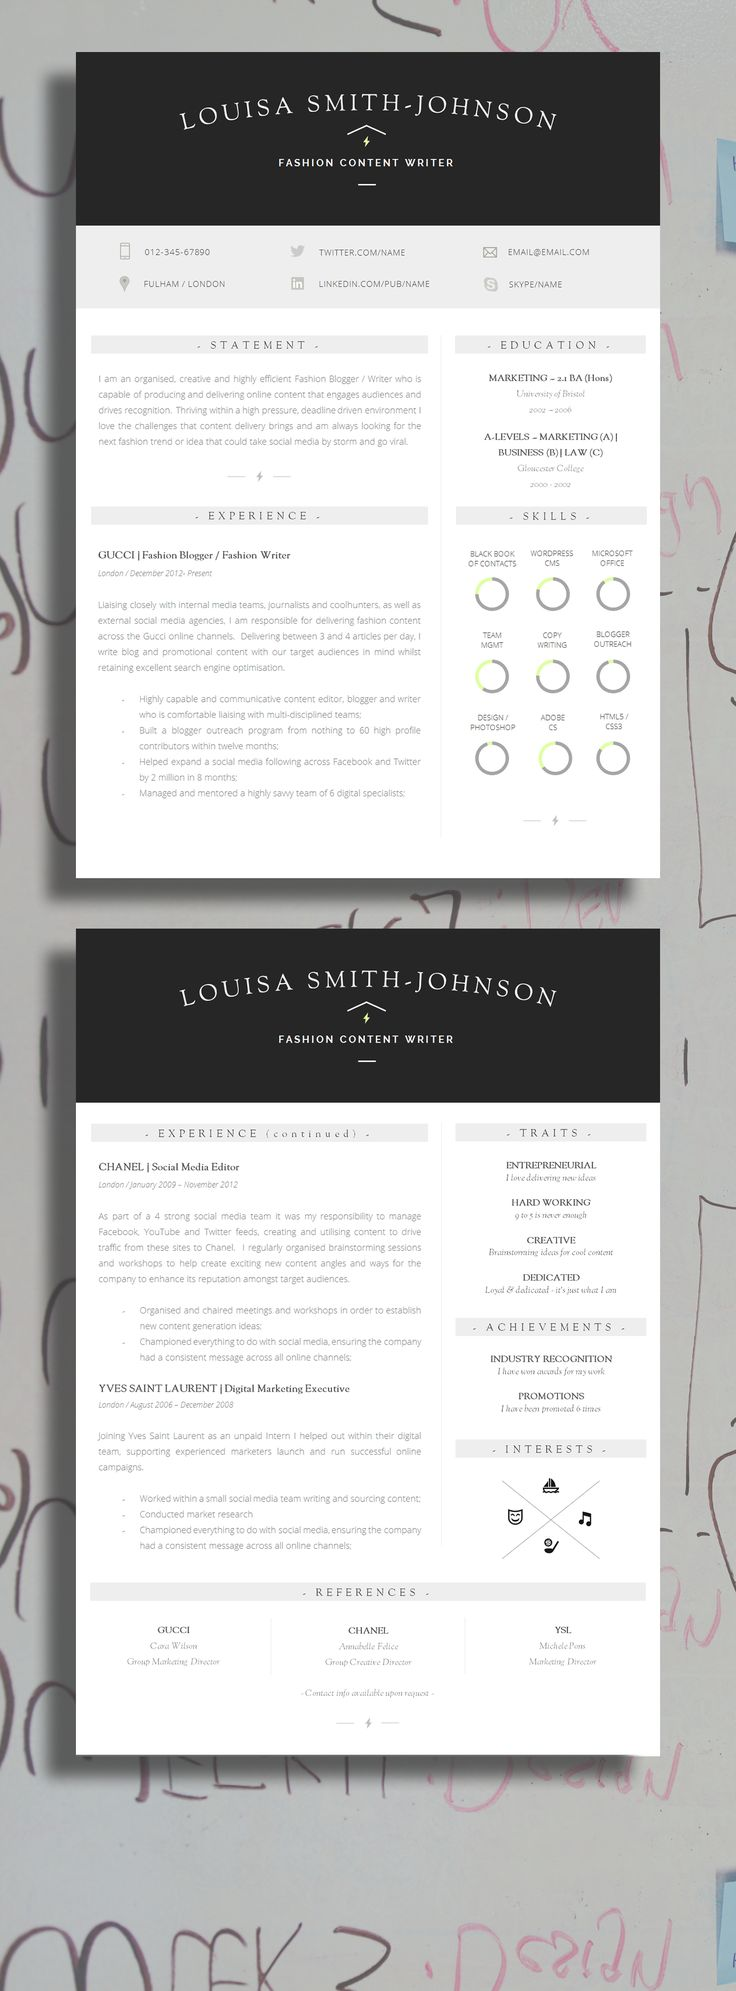 Functional Resume Template Microsoft%0A Resume Design   Resume Template   Cover Letter   Resume Guide   Icons u